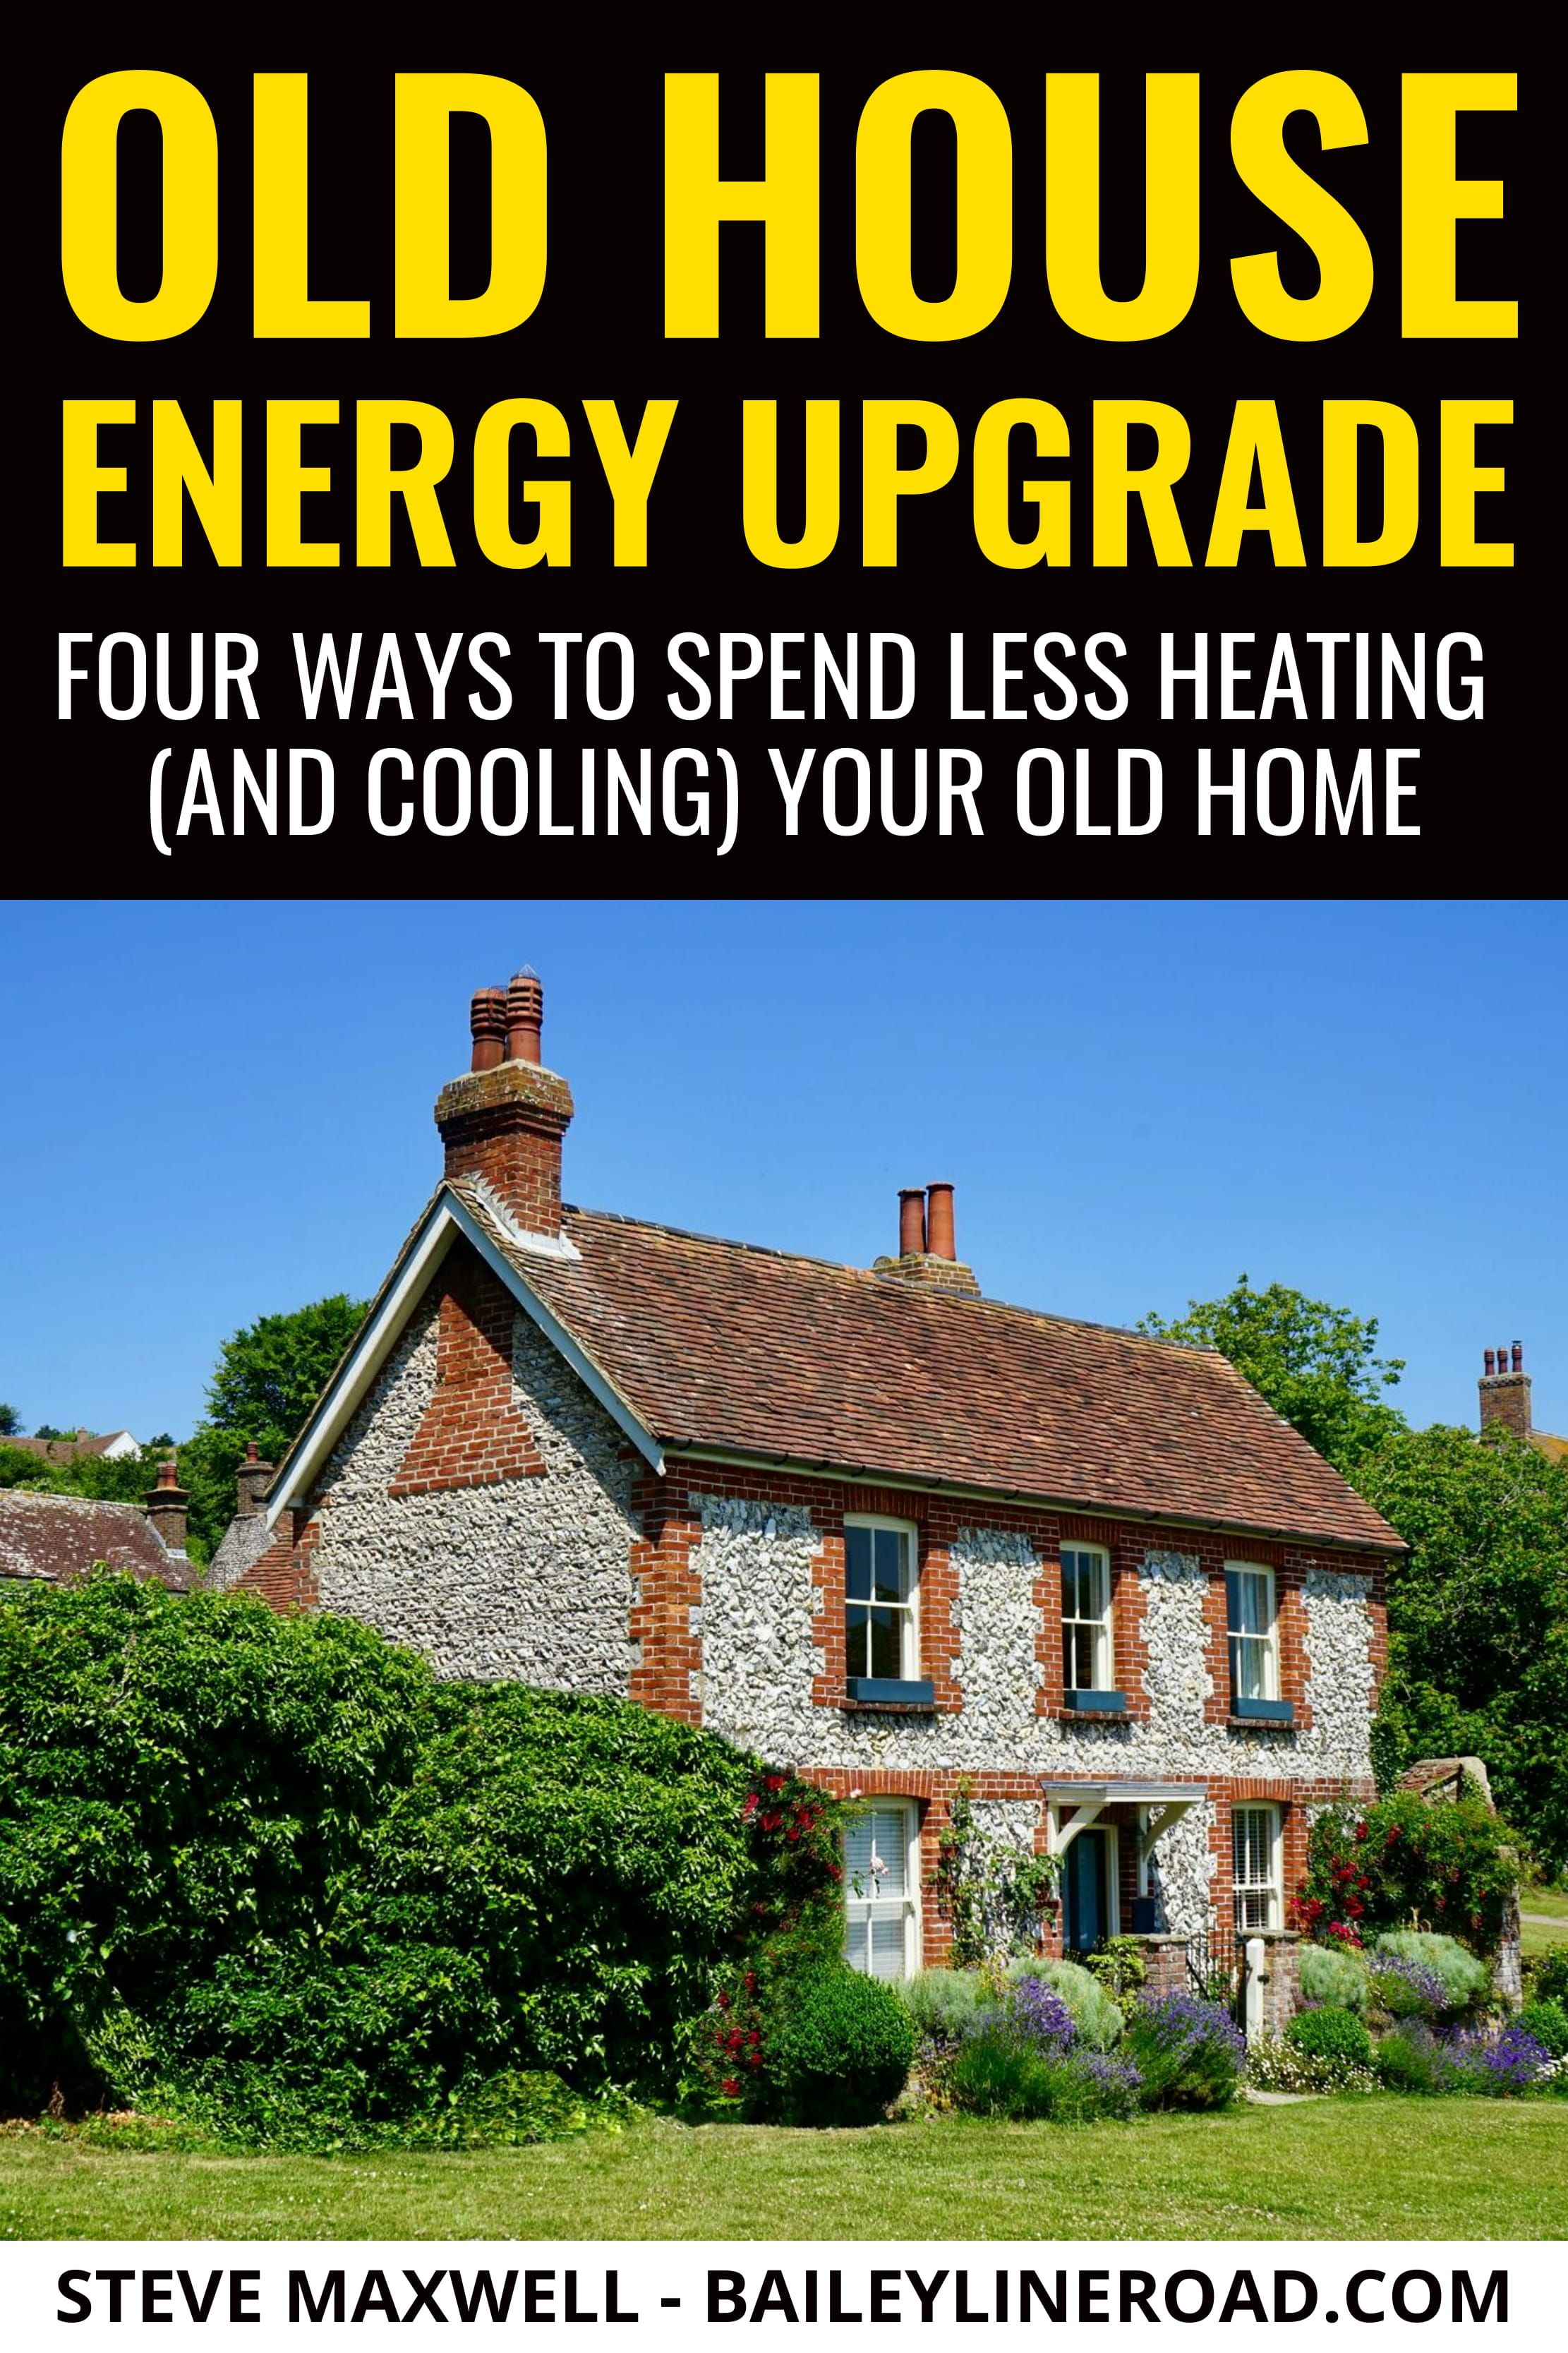 Old House Insulation Four Ways To Spend Less Heating And Cooling Your Old Home In 2020 Home Insulation Old Houses Old House